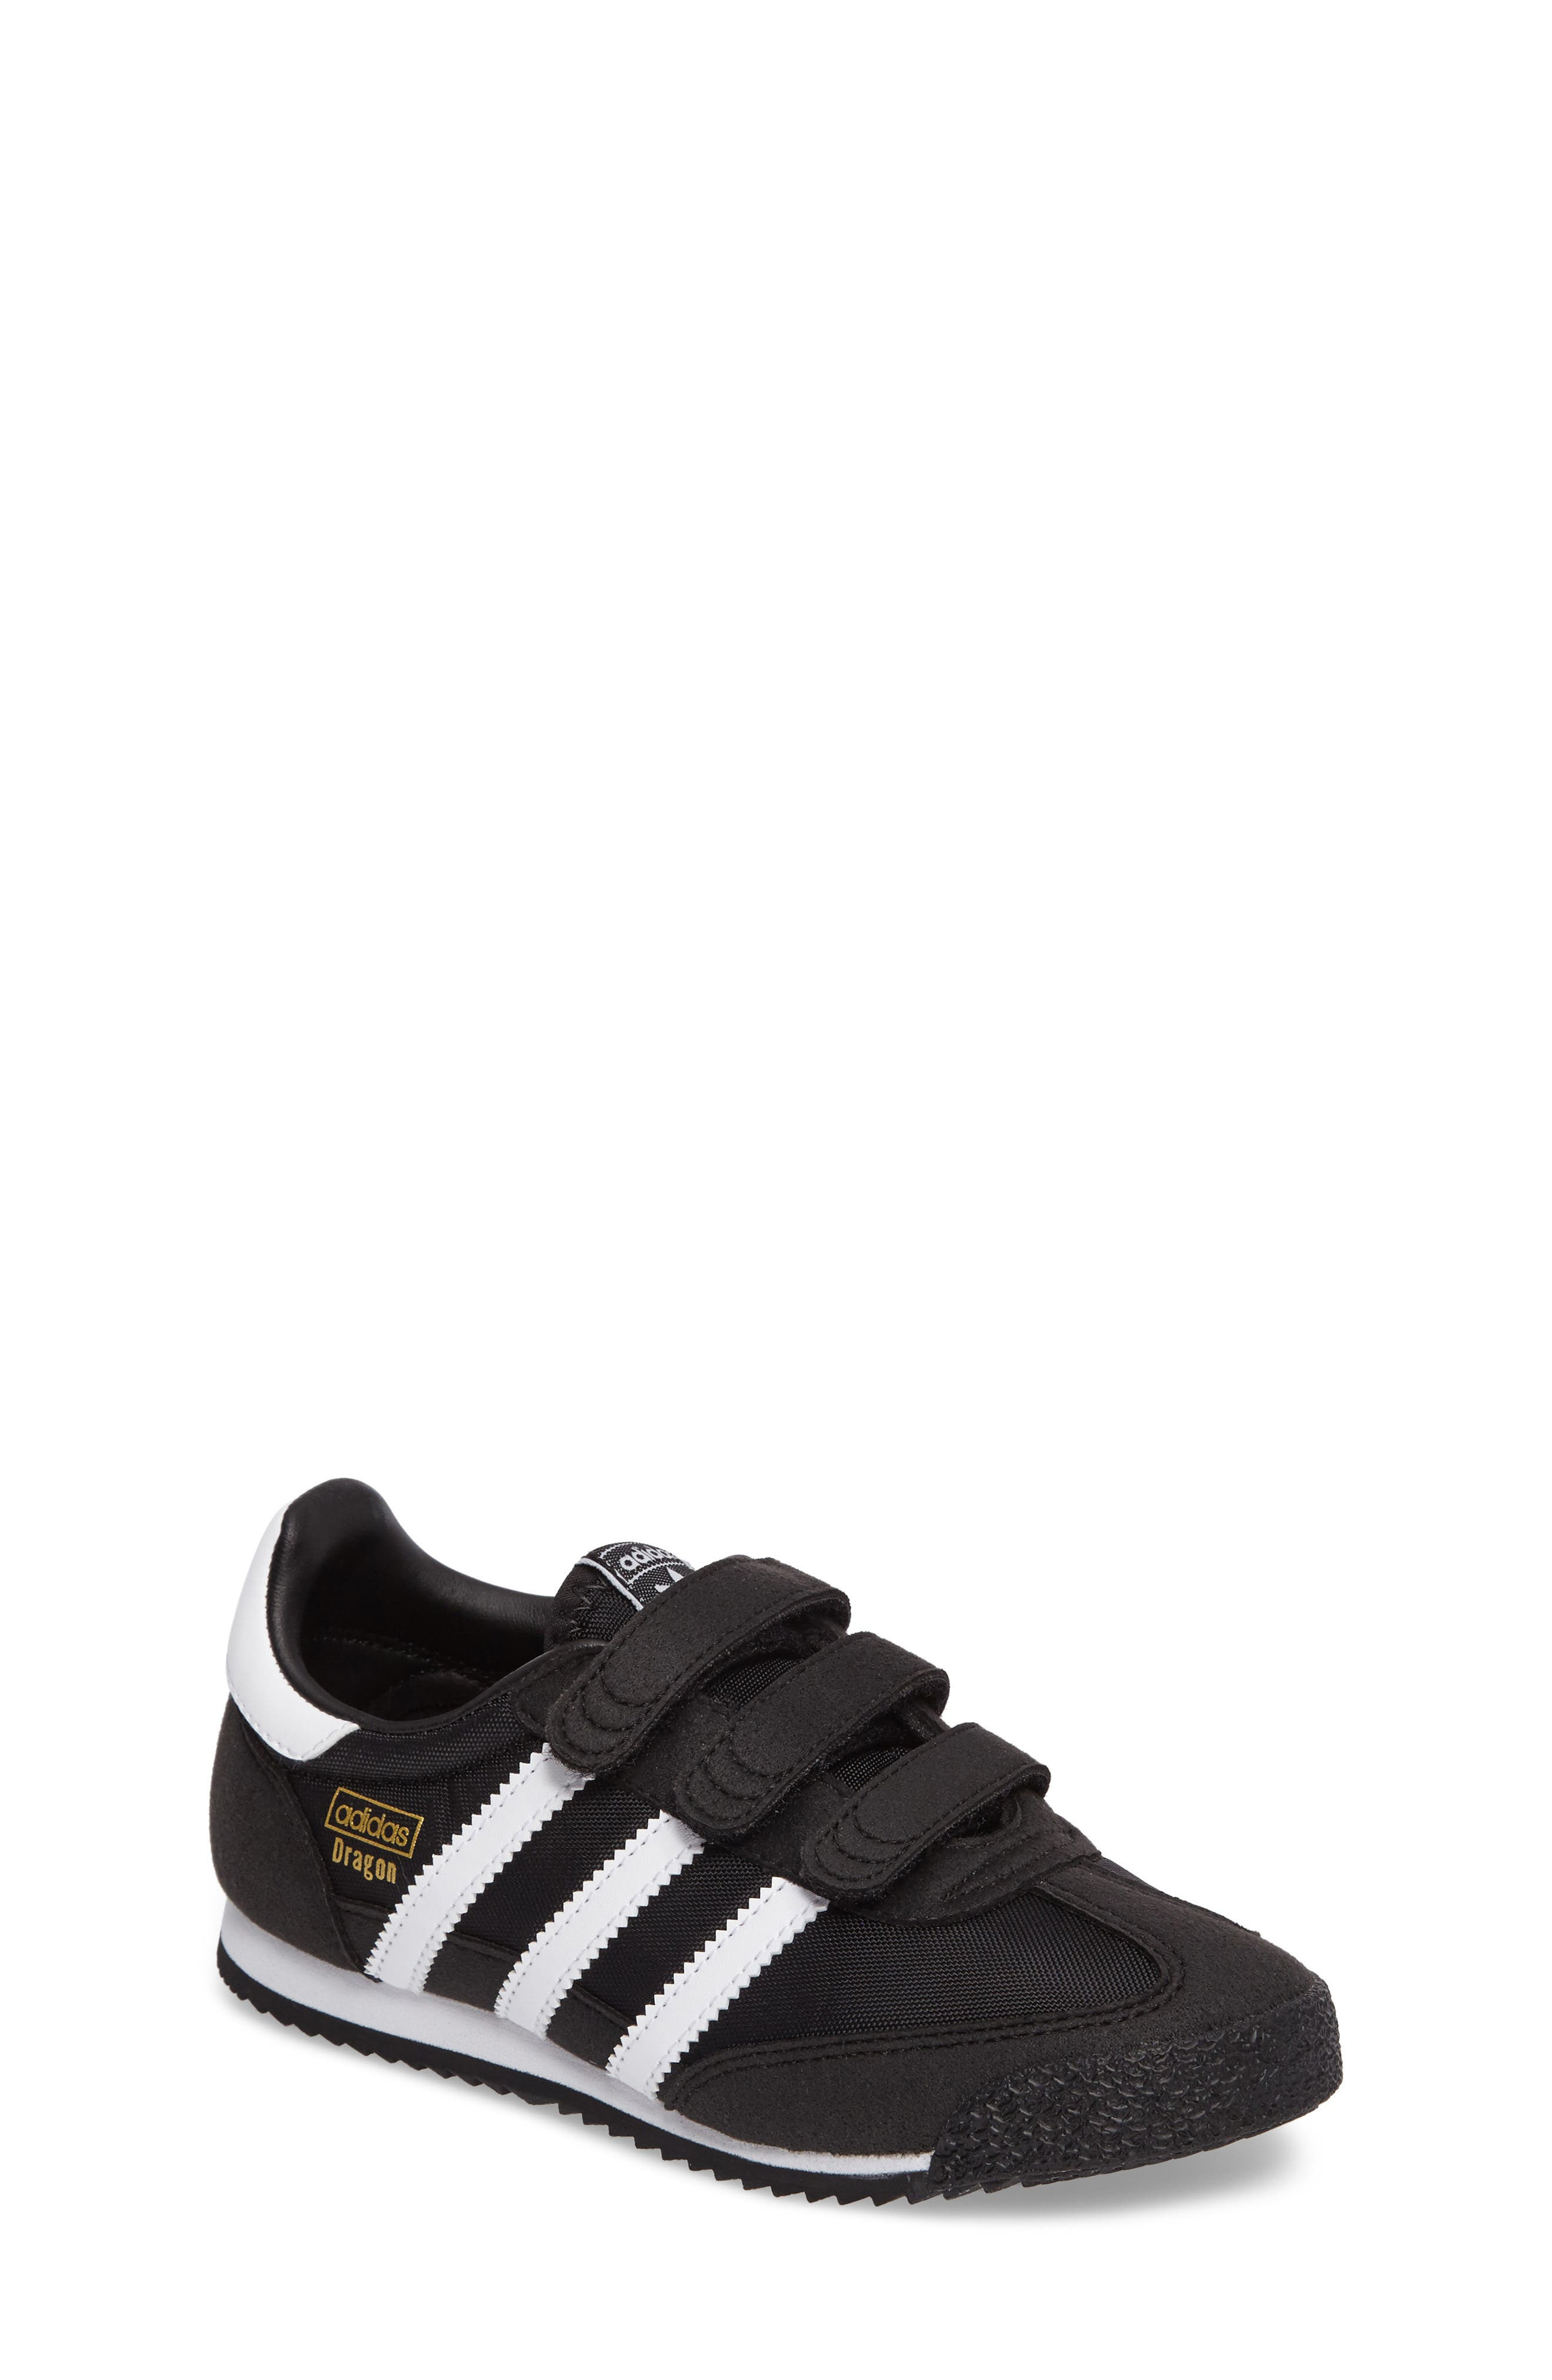 ADIDAS Dragon OG CF Athletic Shoe